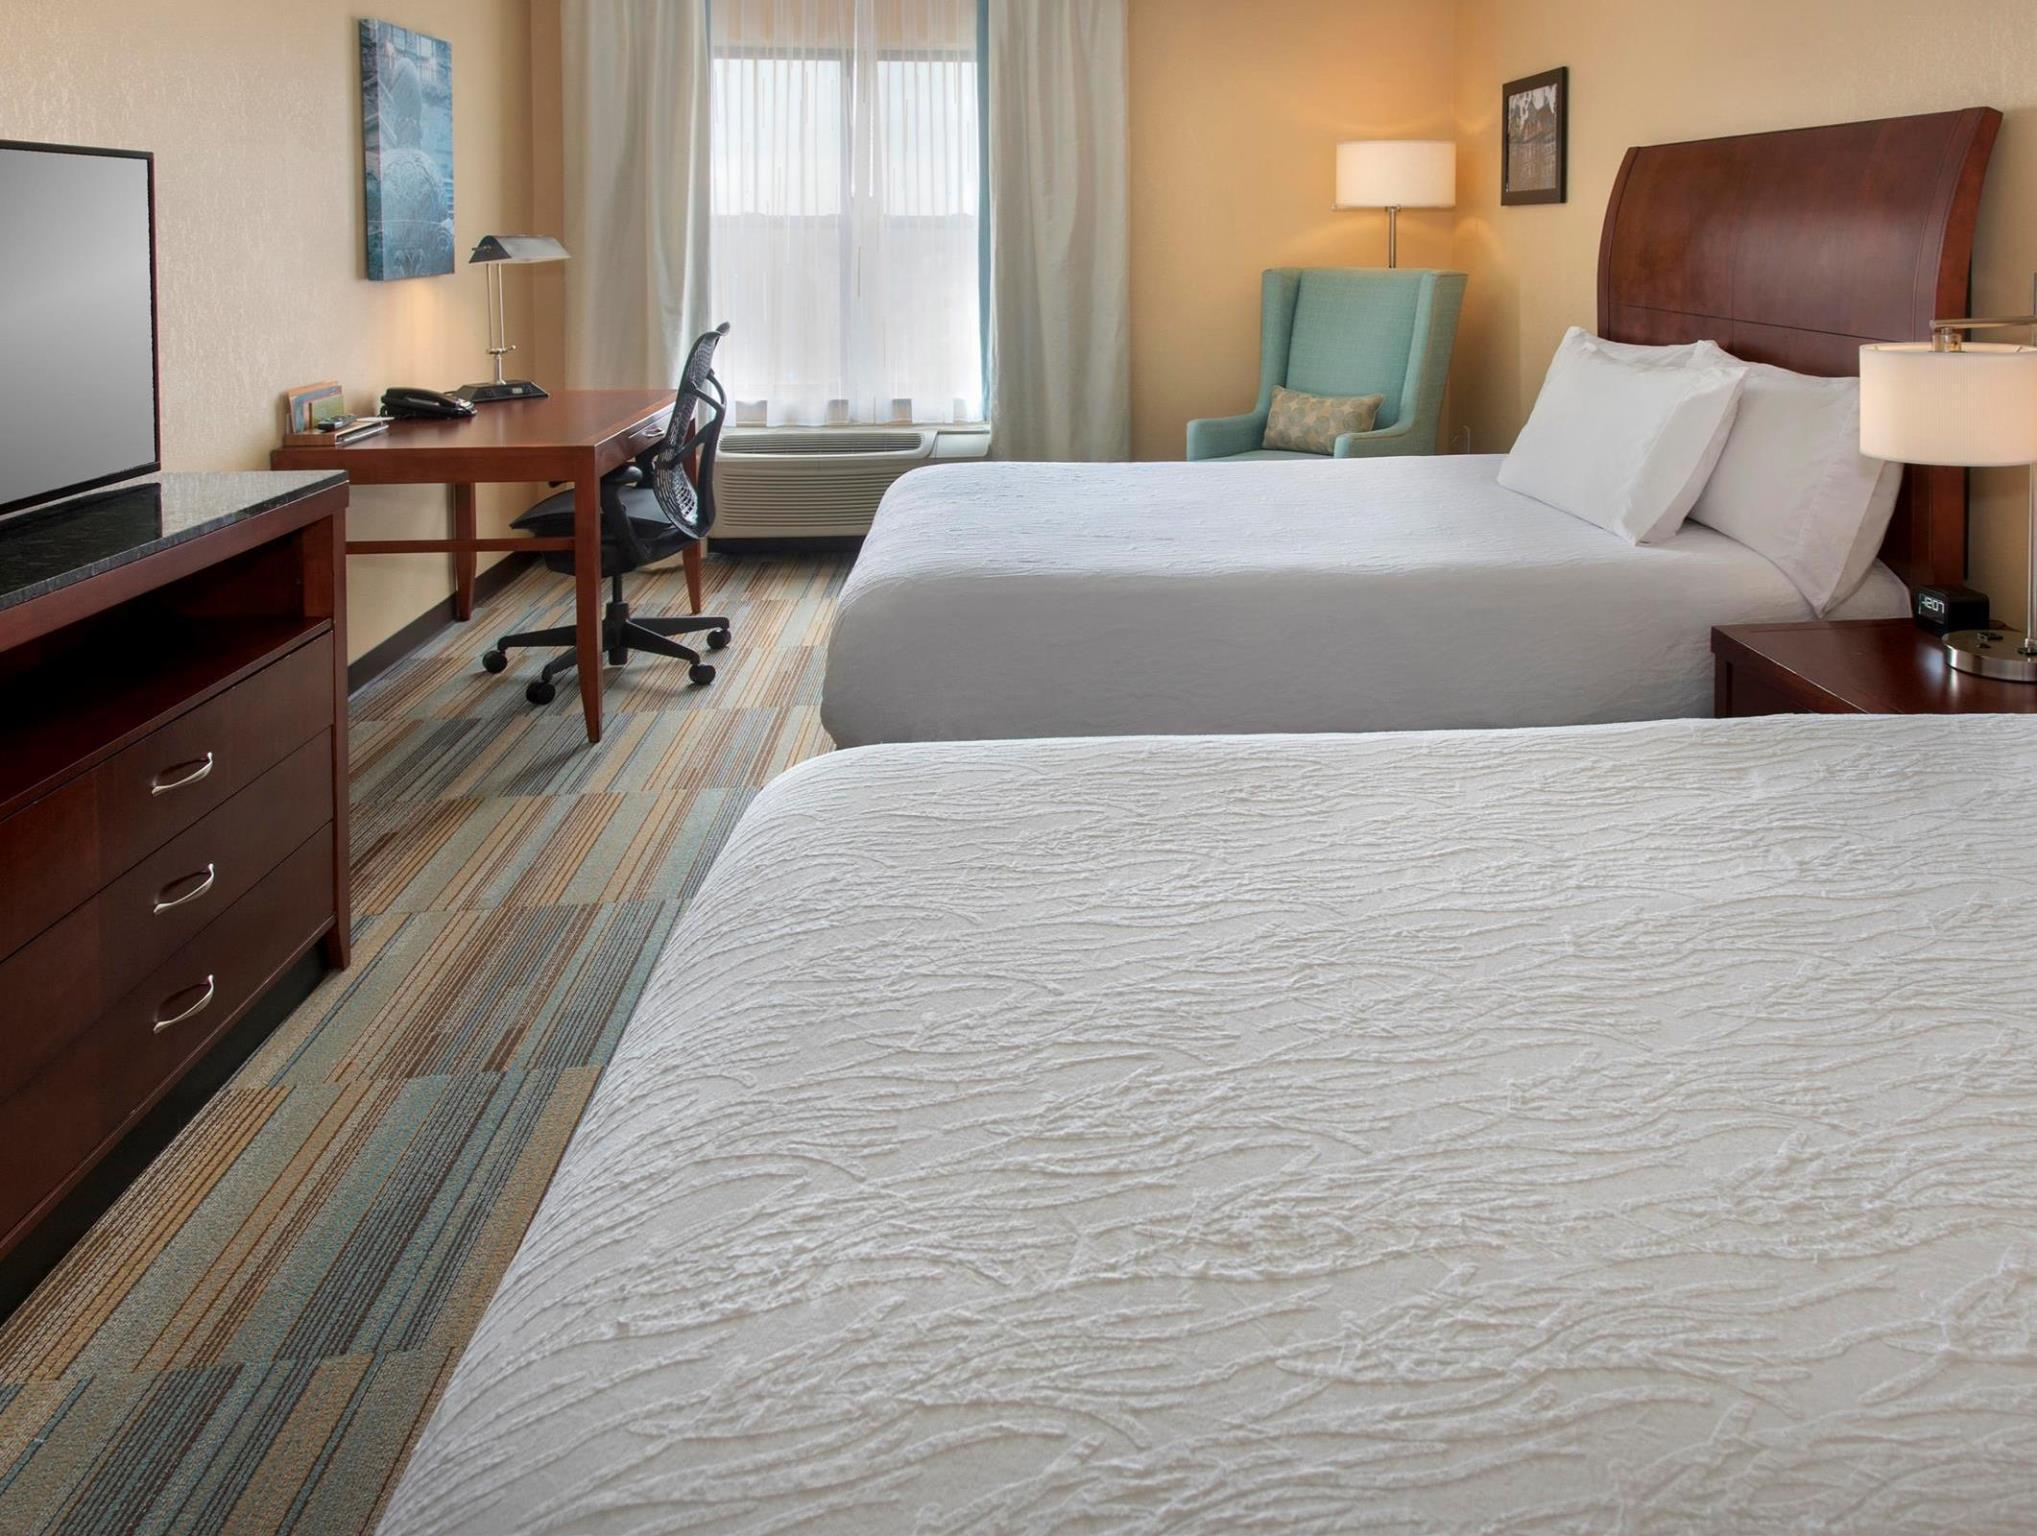 2 Queen Accessible Room Roll In Shower   Guestroom Hilton Garden Inn Albany  Medical Center Hotel